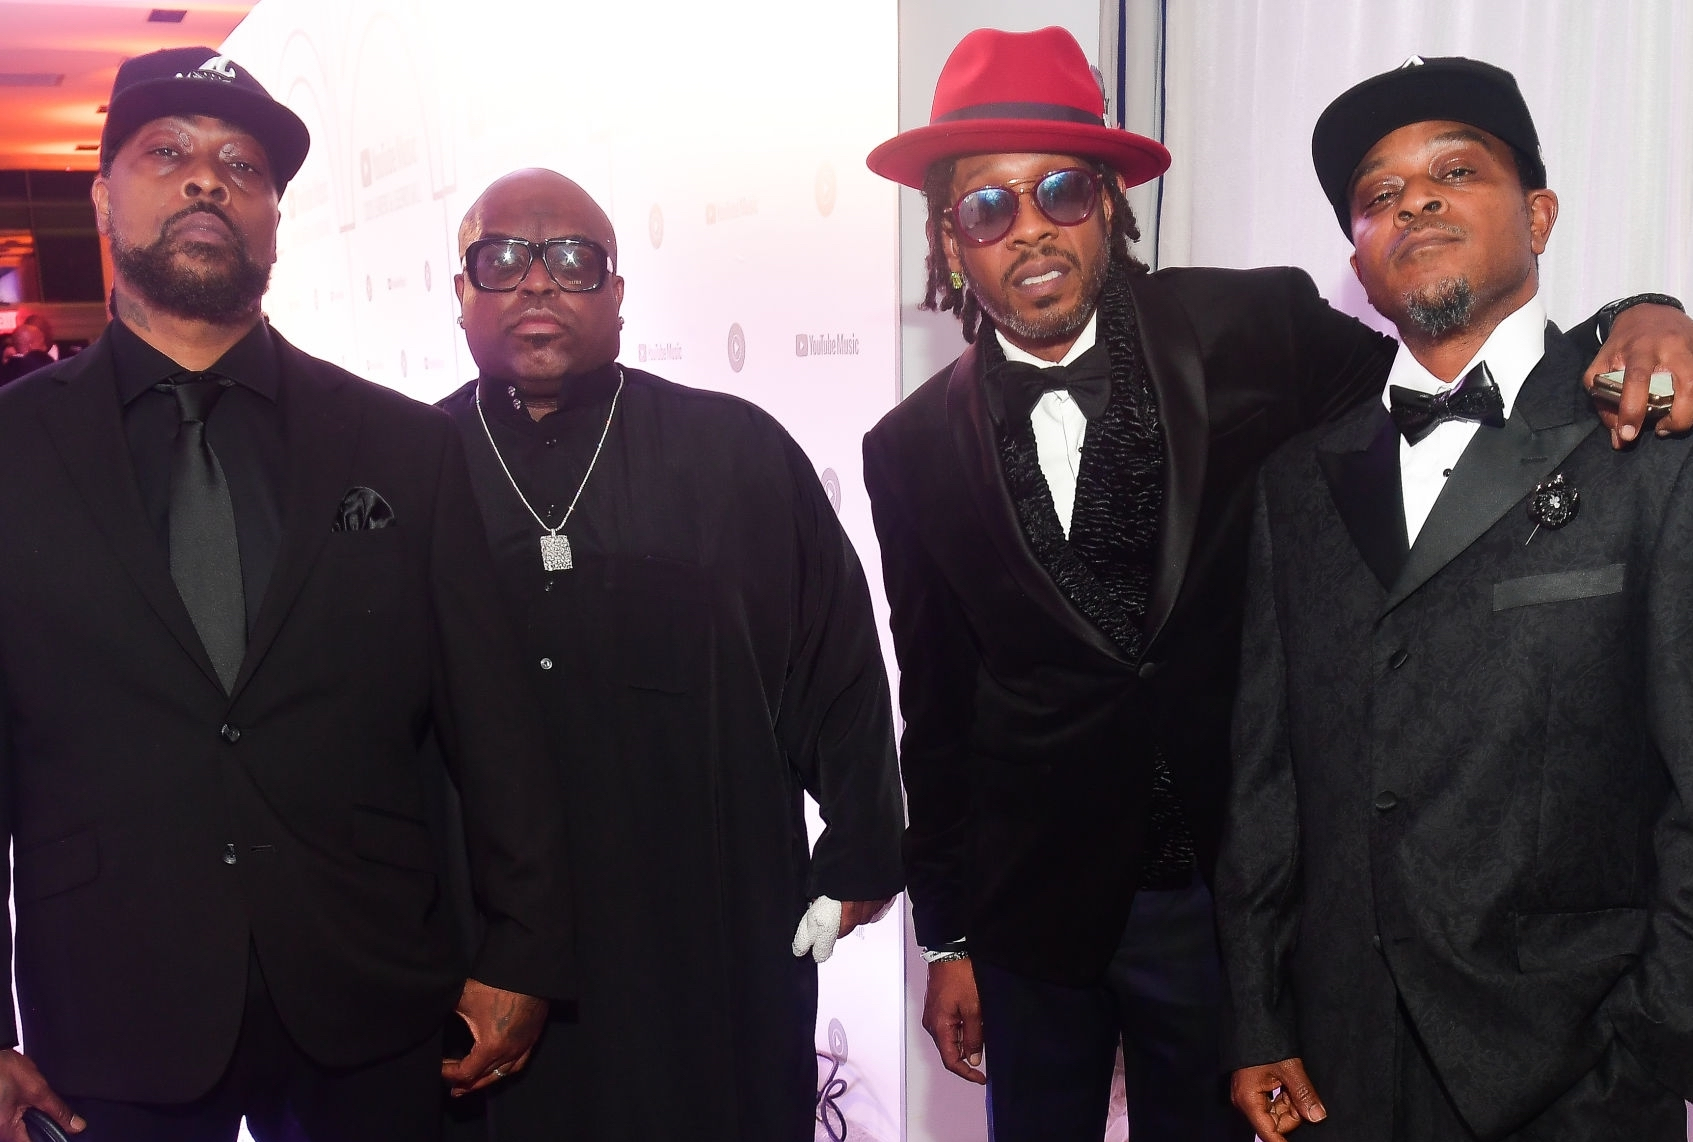 Goodie Mob and Chuck D